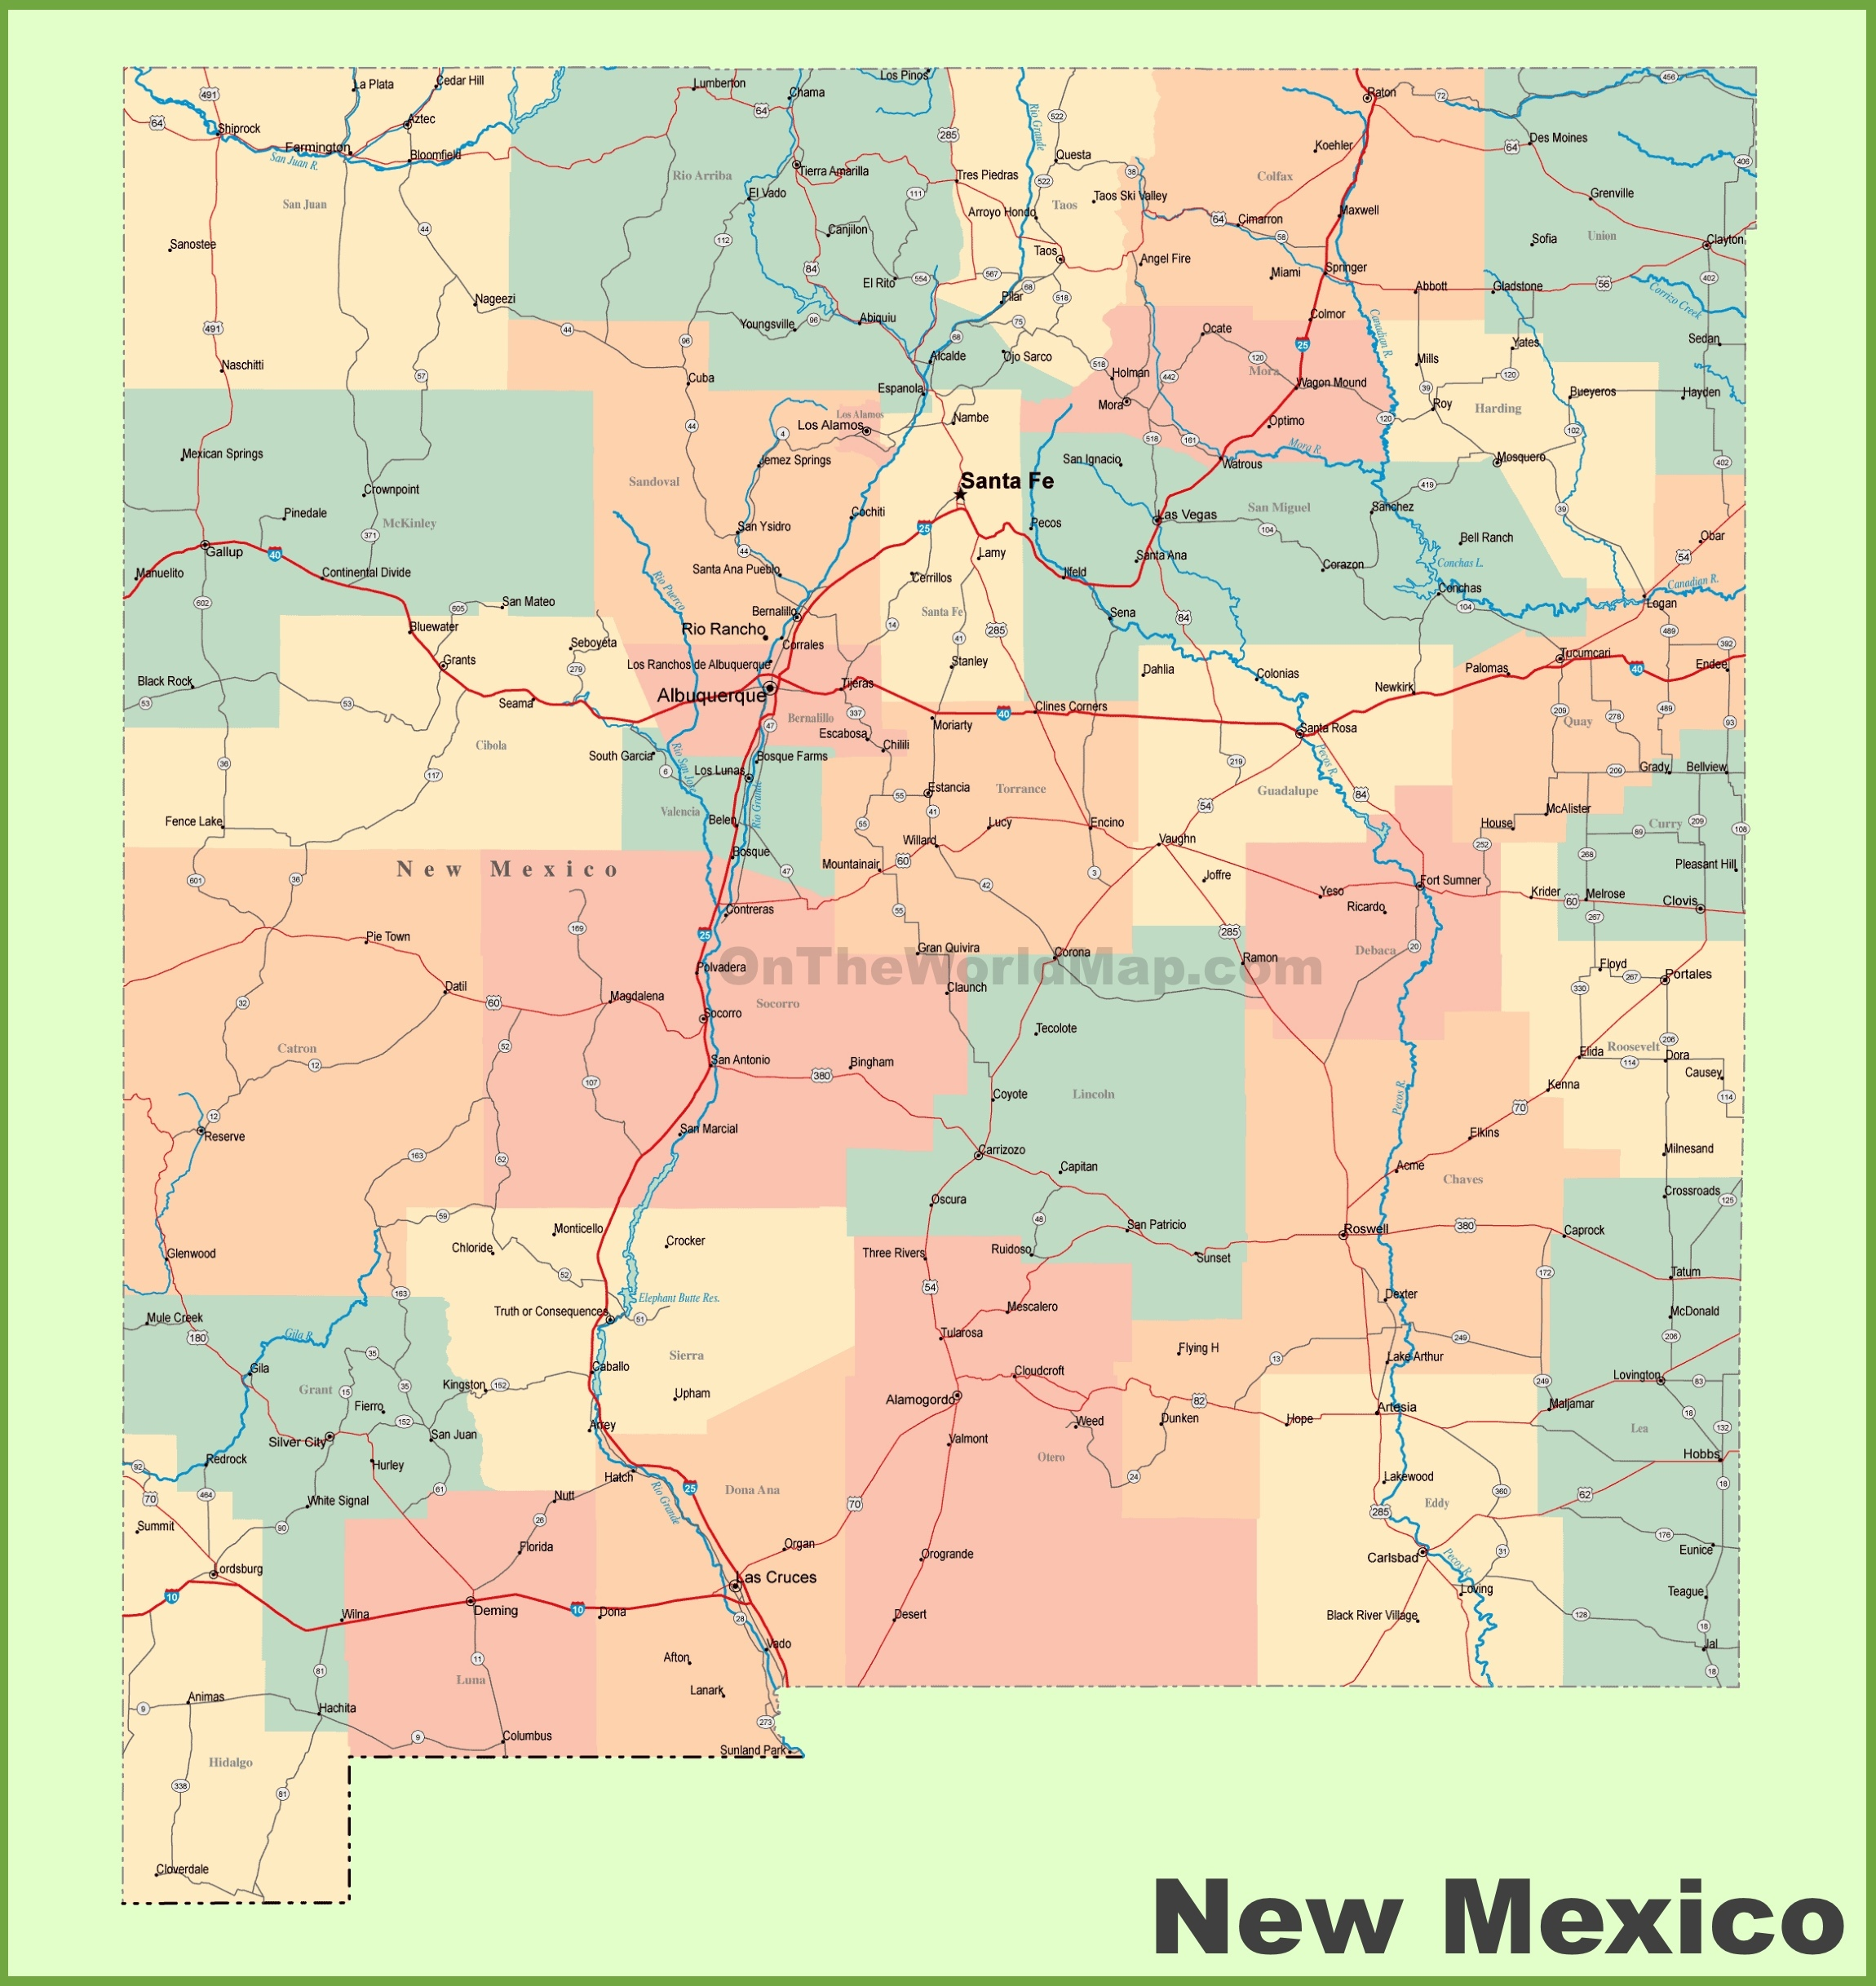 Road map of New Mexico with cities